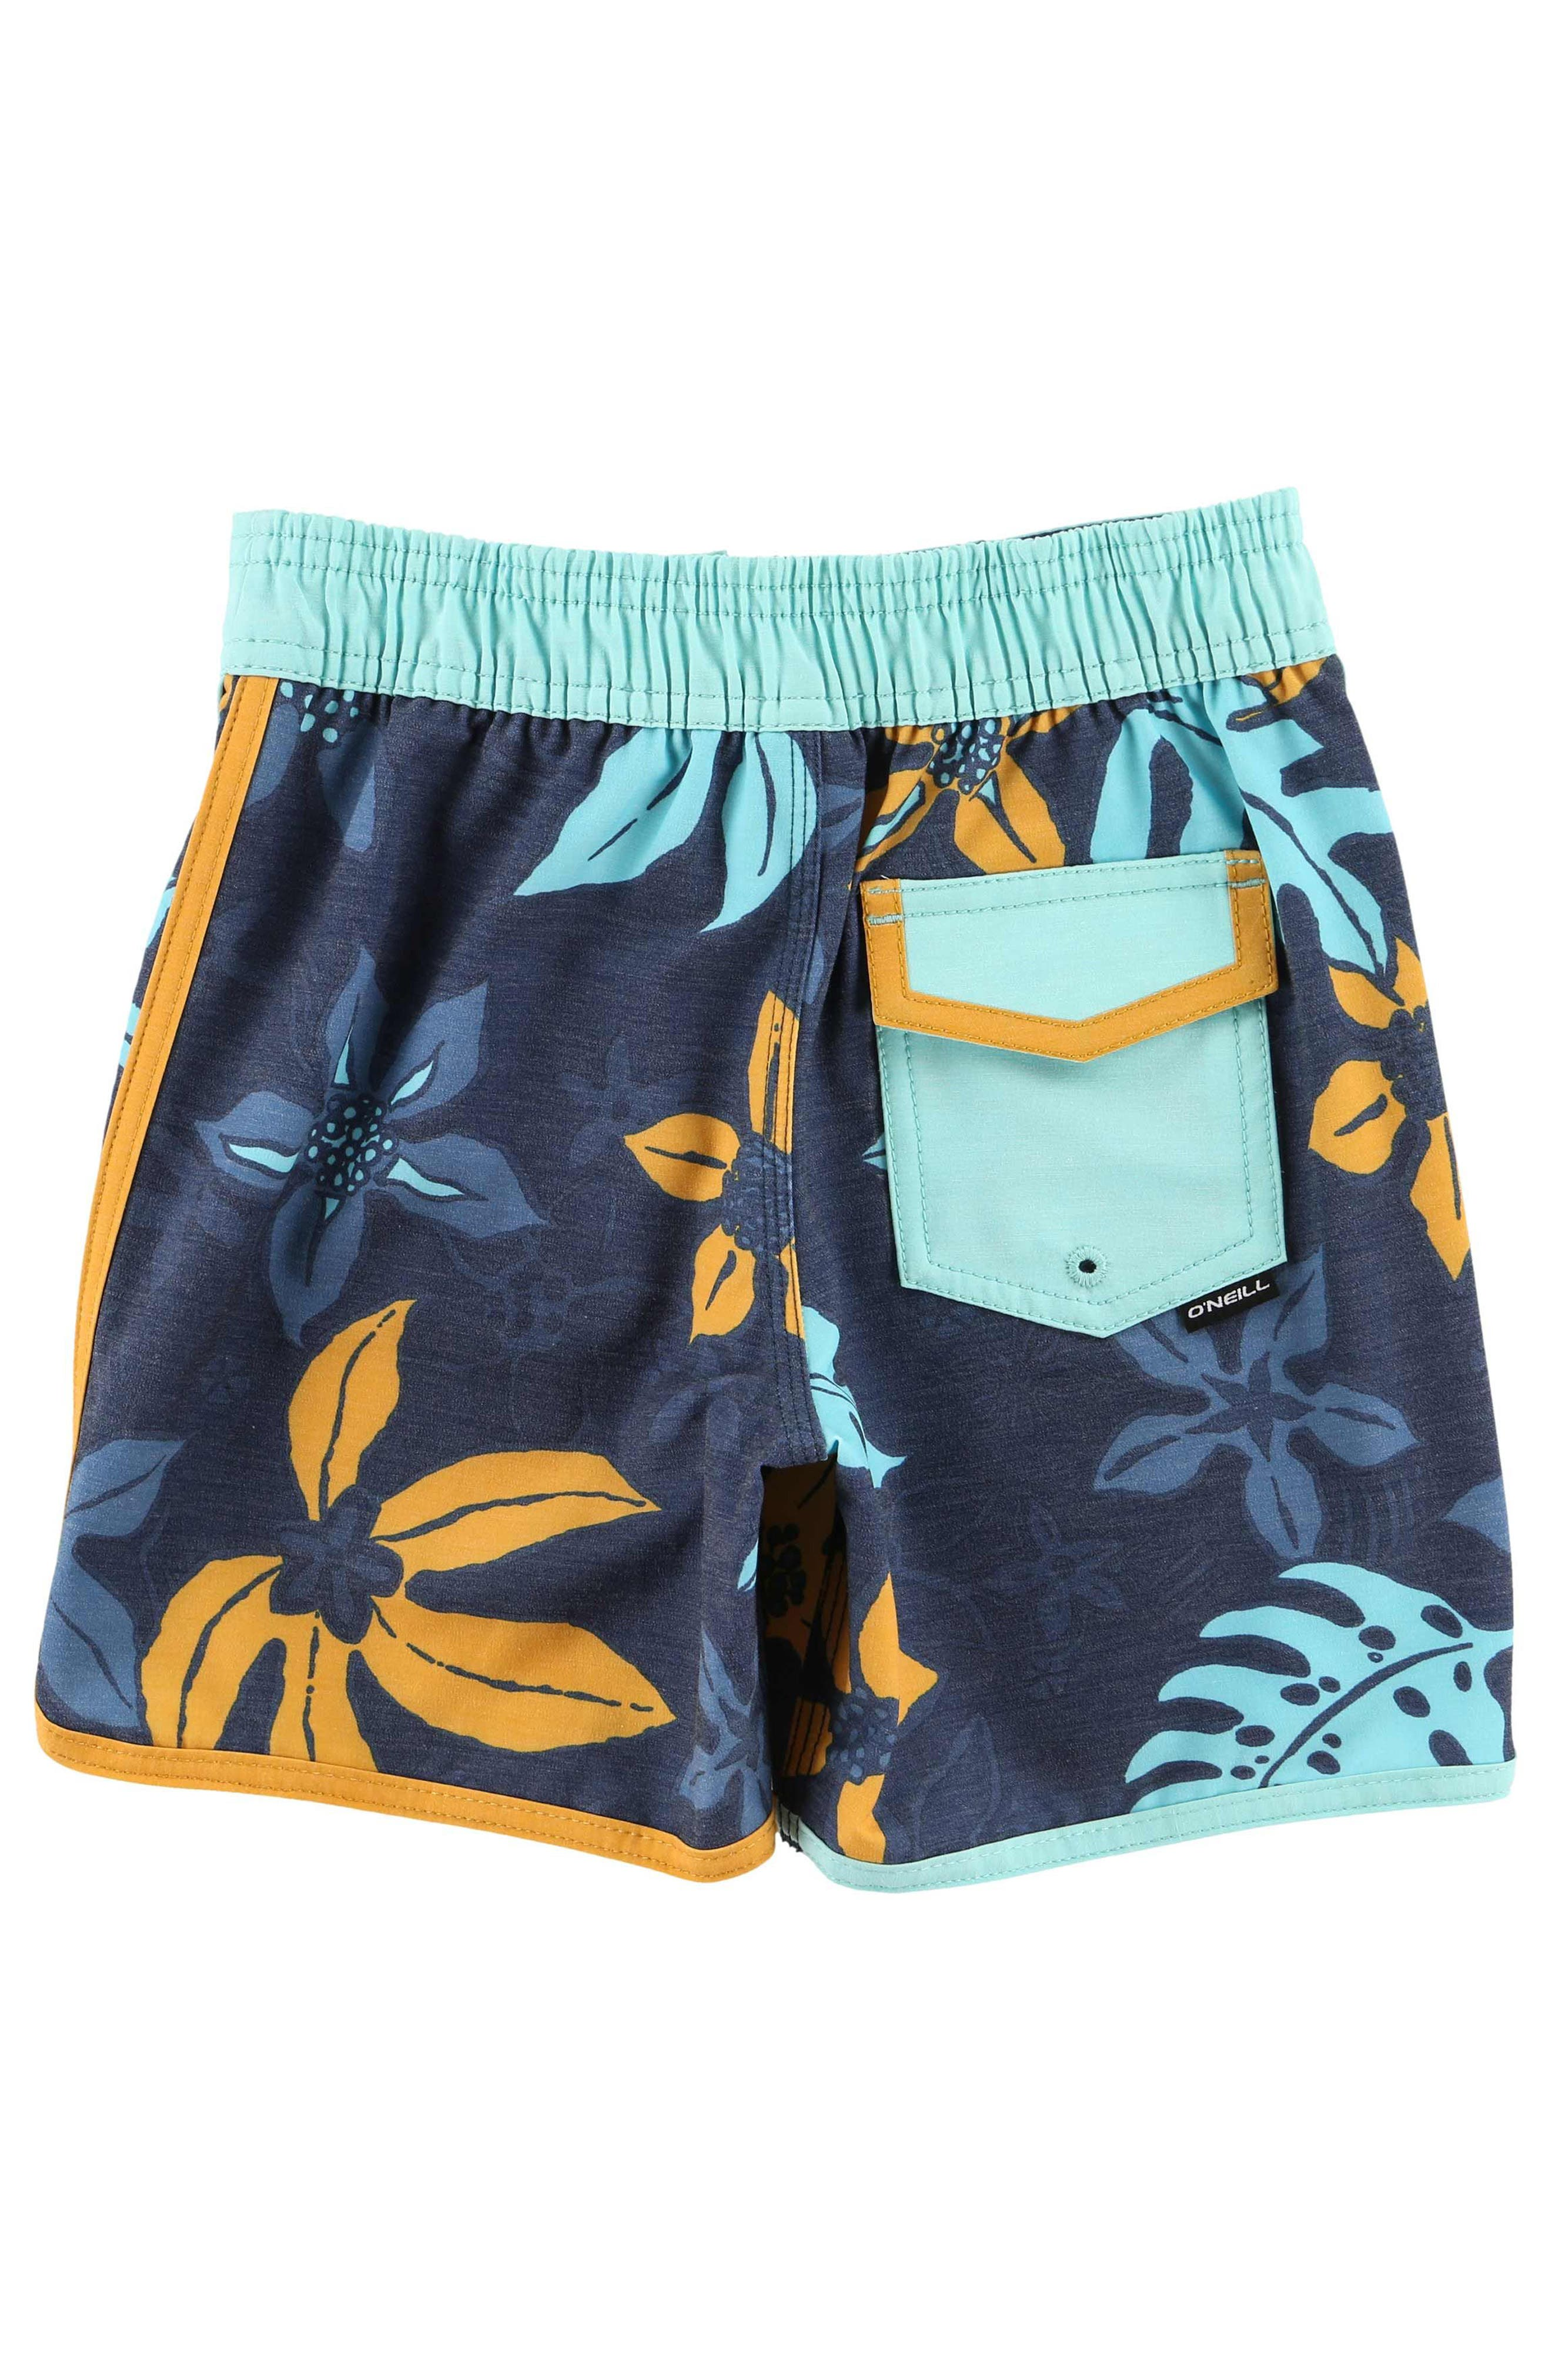 Alternate Image 2  - O'Neill Hyperfreak Coalition Board Shorts (Little Boys)